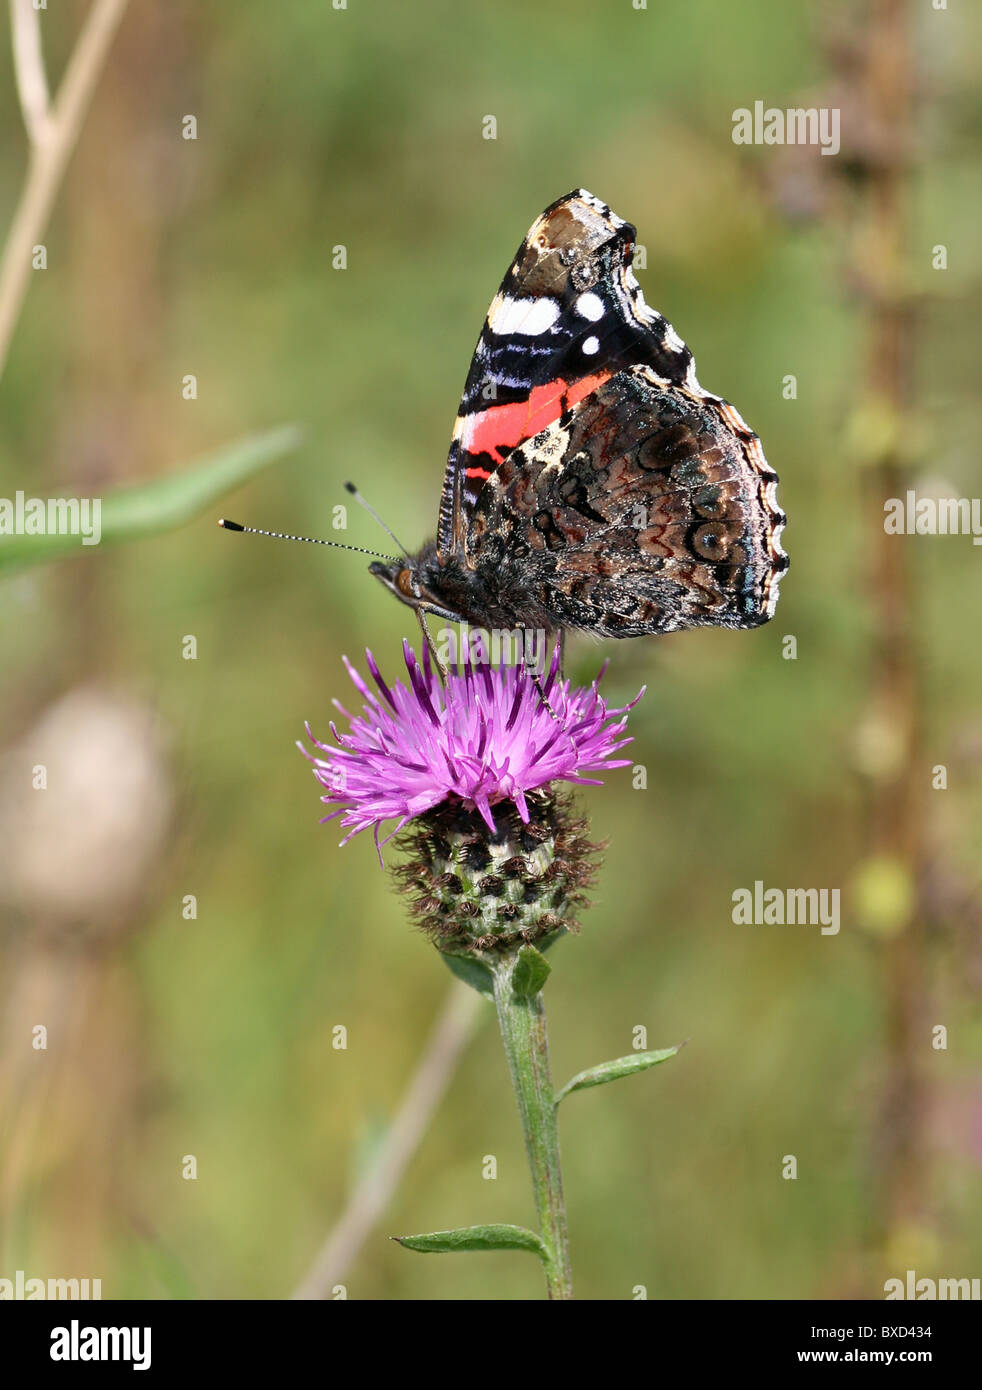 close up of a Red Admiral (Vanessa atalanta) butterfly on a pink or purple flower, Common Knapweed (Centaurea nigra) Stock Photo